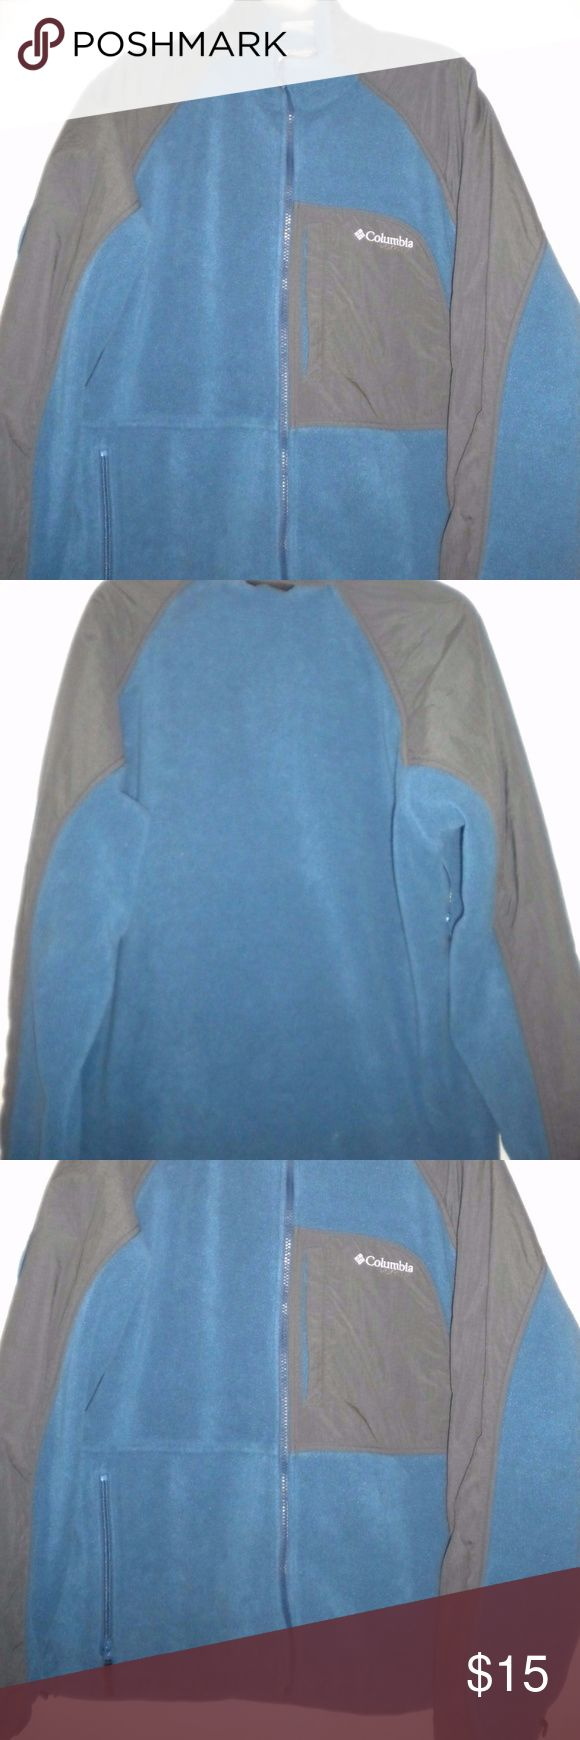 Columbia Men Large Fleece Vertex Core Jacket Gently Worn.  Columbia Men Size Large Jacket. Long Sleeves.  Zipper front.  Two front zip pockets. Blue and charcoal. Fleece and nylon pattern. Vertex.  Core.  Interchange.   Adjustable elastic along the bottom.  Snap chest pocket. Zipper under the arms. Made of Polyester and Nylon. Chest approximately 54 inches and length approximately 27 inches in front and 30 inches in back. TUnder shoulder seam to end of cuff approximately 23 inches.  Back…